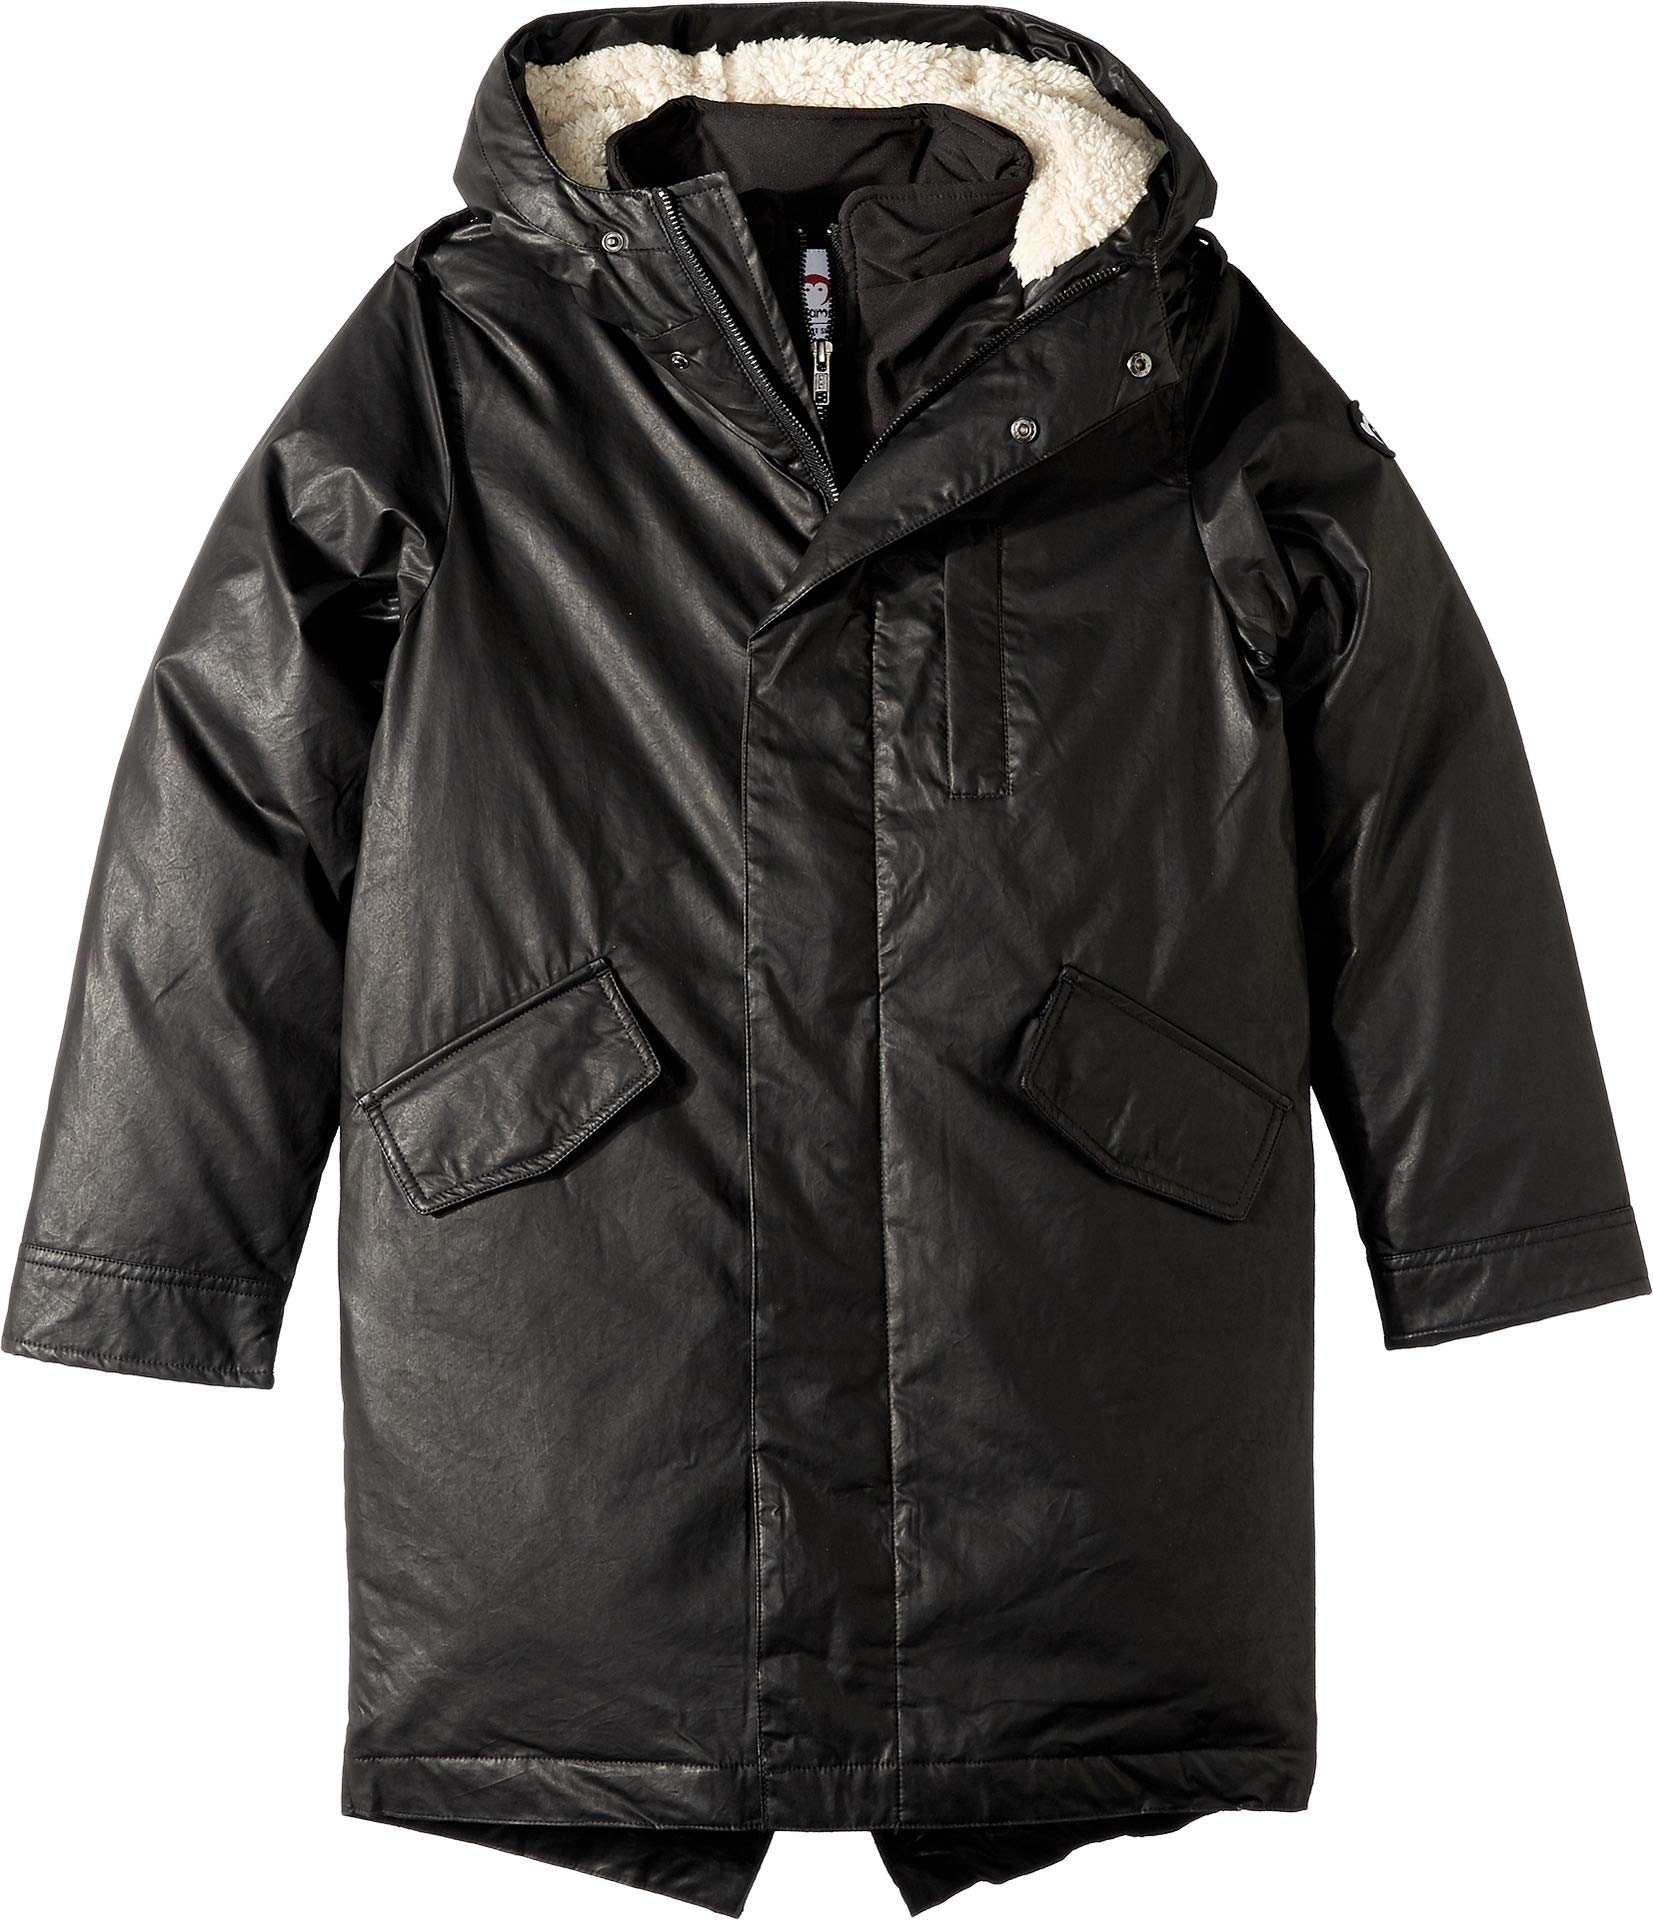 Appaman Kids Baby Boy's Extra Soft Lined Zip and Button Up Himalaya Down Coat with Hood (Toddler/Little Kids/Big Kids) Black 5